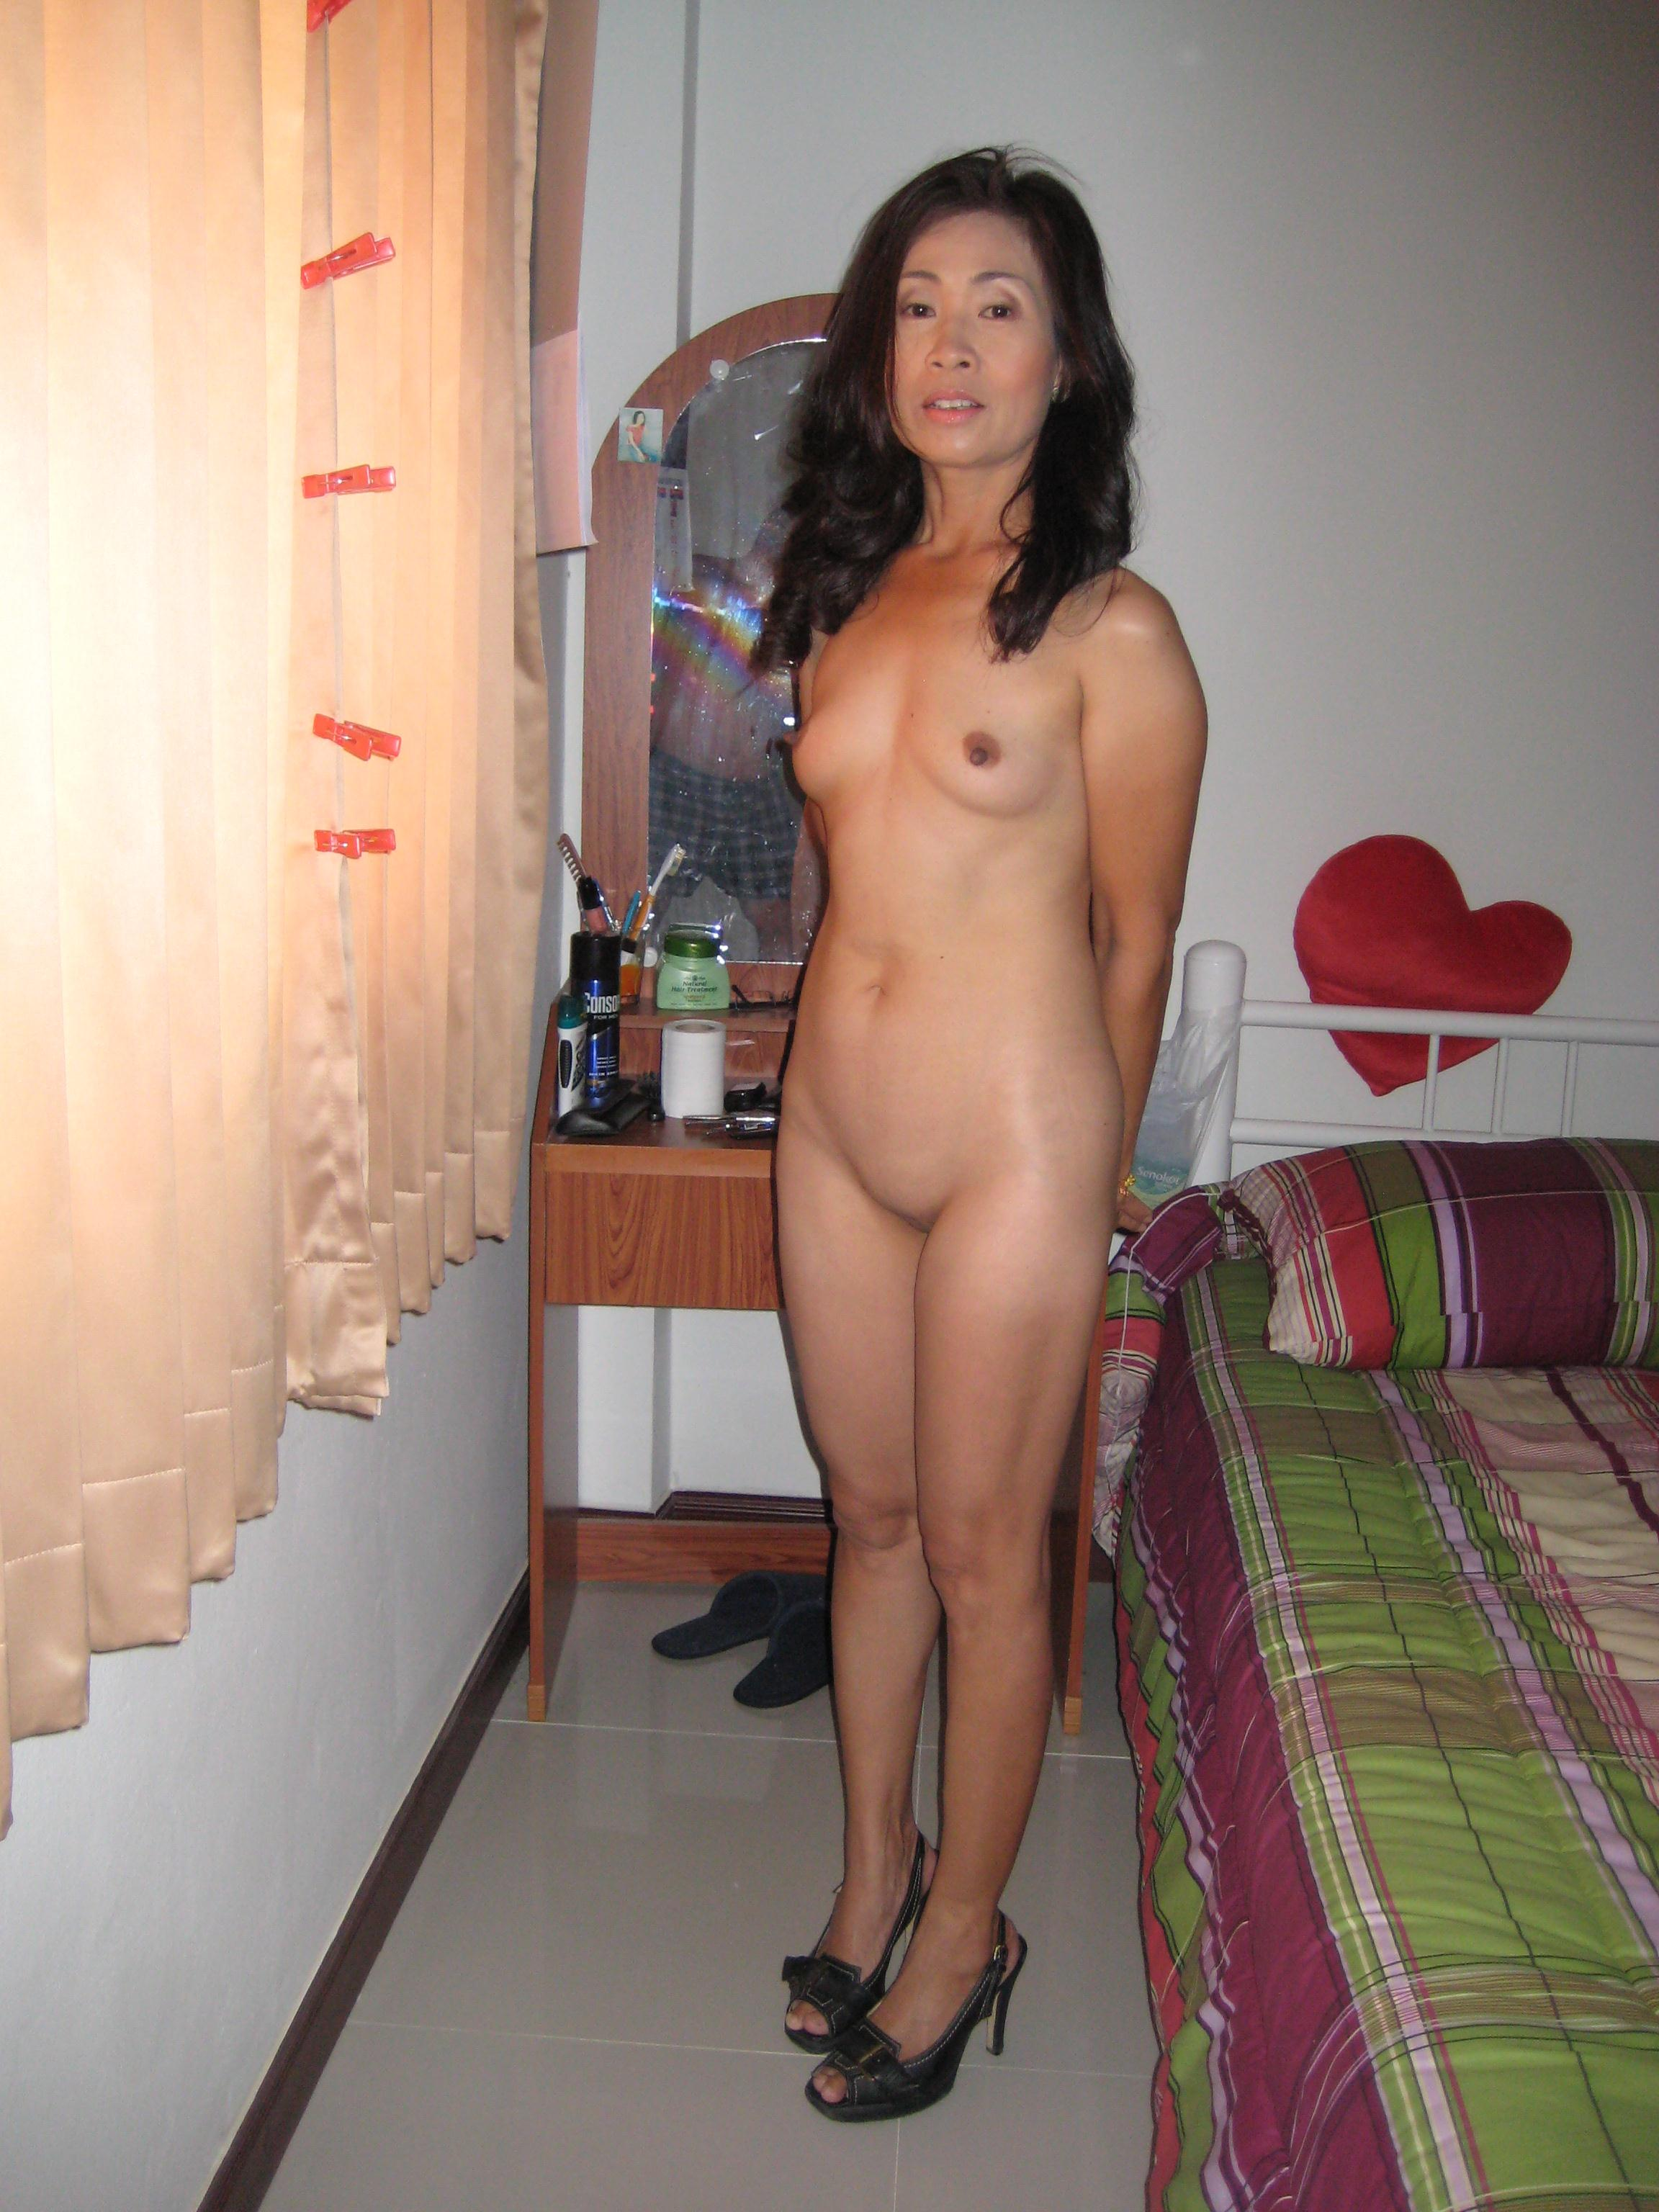 Guess should Amateur mature asian